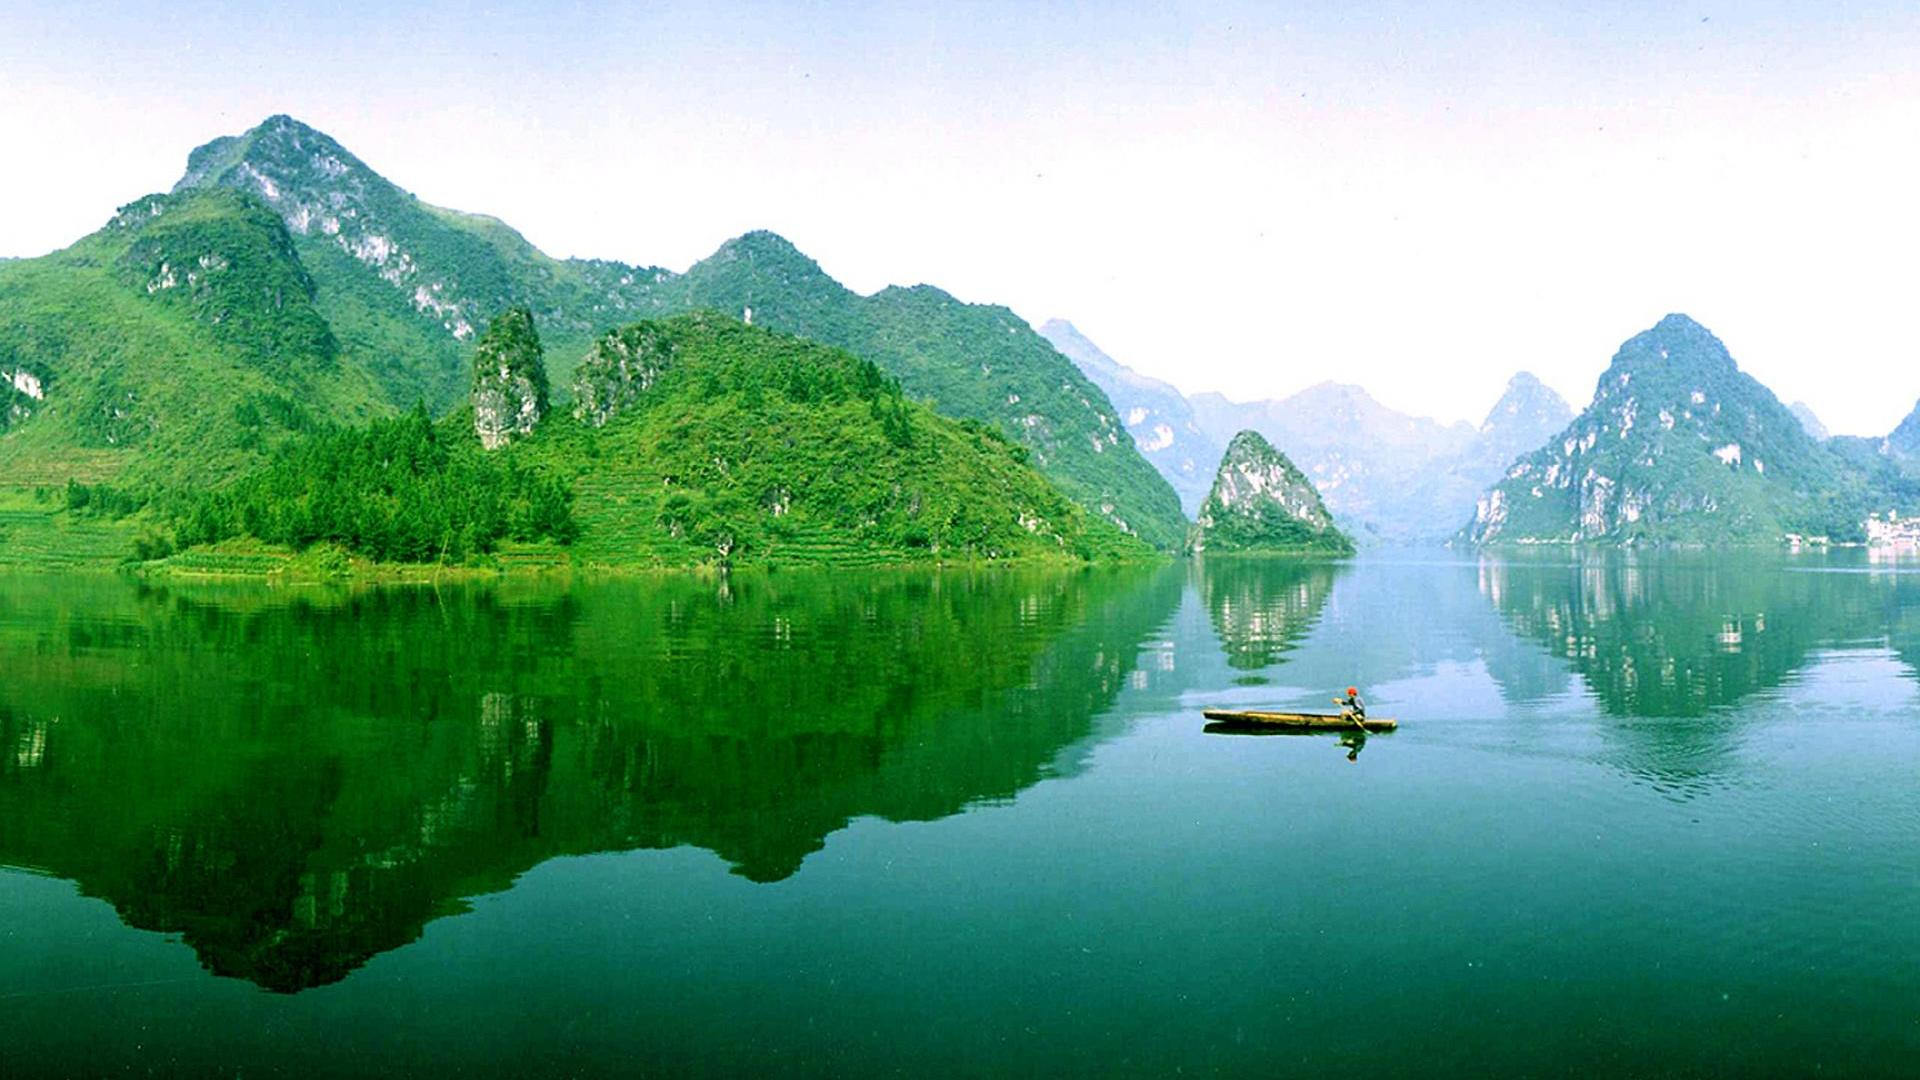 Guilin High Definition Widescreen Wallpapers for Mobile 19201080 1920x1080